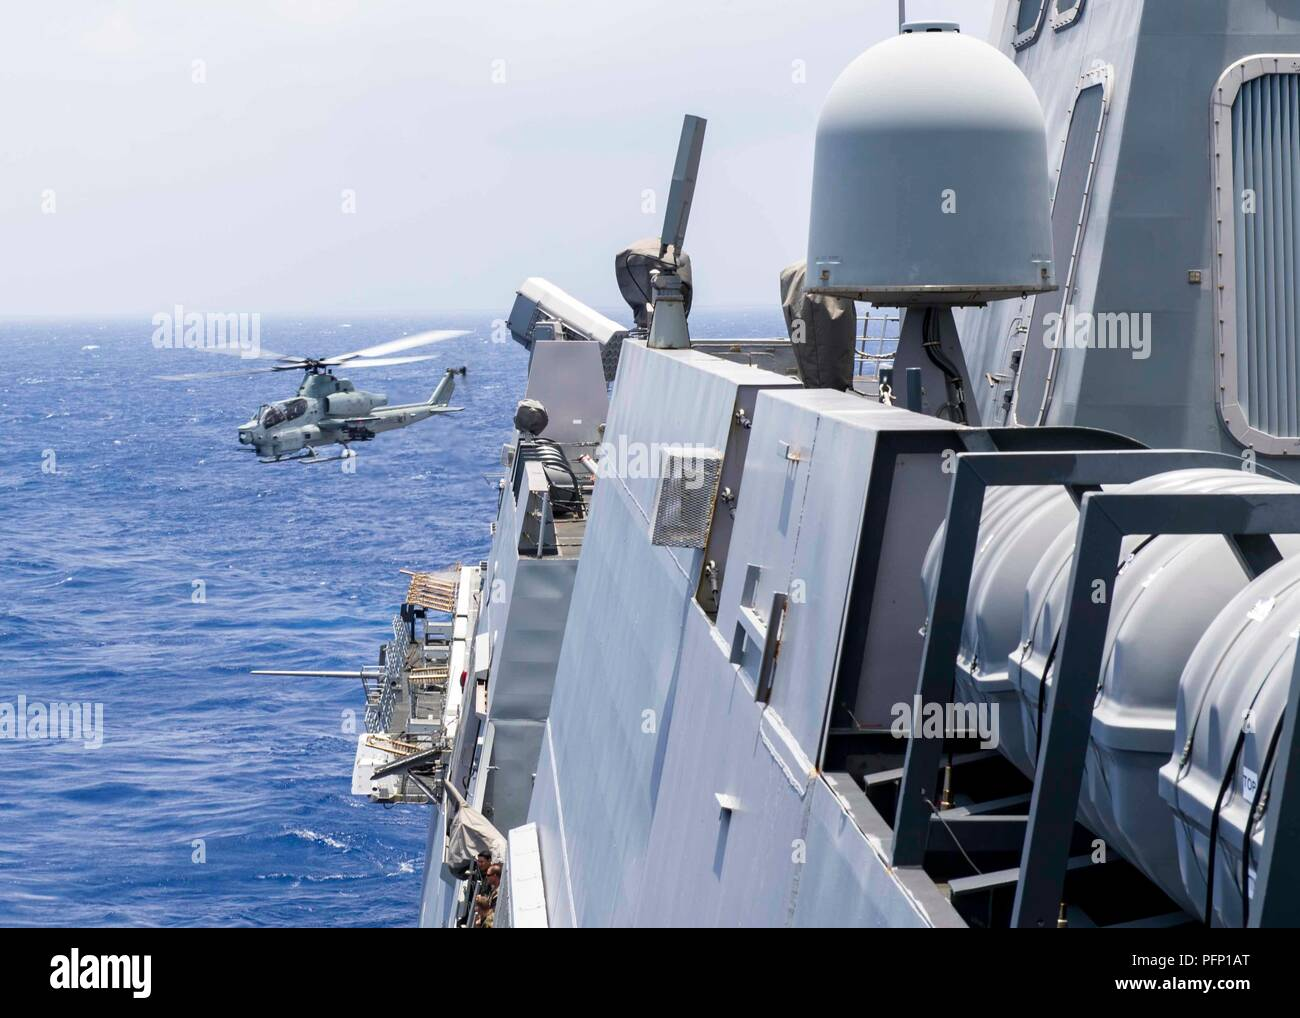 180809-N-PH222-0039 PACIFIC OCEAN (August 9, 2018) A AH – 1Z Viper helicopter, assigned to the Marine Light Attack Helicopter detachment of Marine Medium Tiltrotor Squadron (VMM) 166, departs the flight deck of San Antonio-class amphibious transport dock USS Anchorage (LPD 23) during a regularly scheduled deployment of the Essex Amphibious Ready Group (ARG) and 13th Marine Expeditionary Unit (MEU). The Essex ARG/MEU team is a strong and flexible force equipped and scalable to respond to any crisis ranging from humanitarian assistance and disaster relief to contingency operations. (U.S. Navy ph - Stock Image